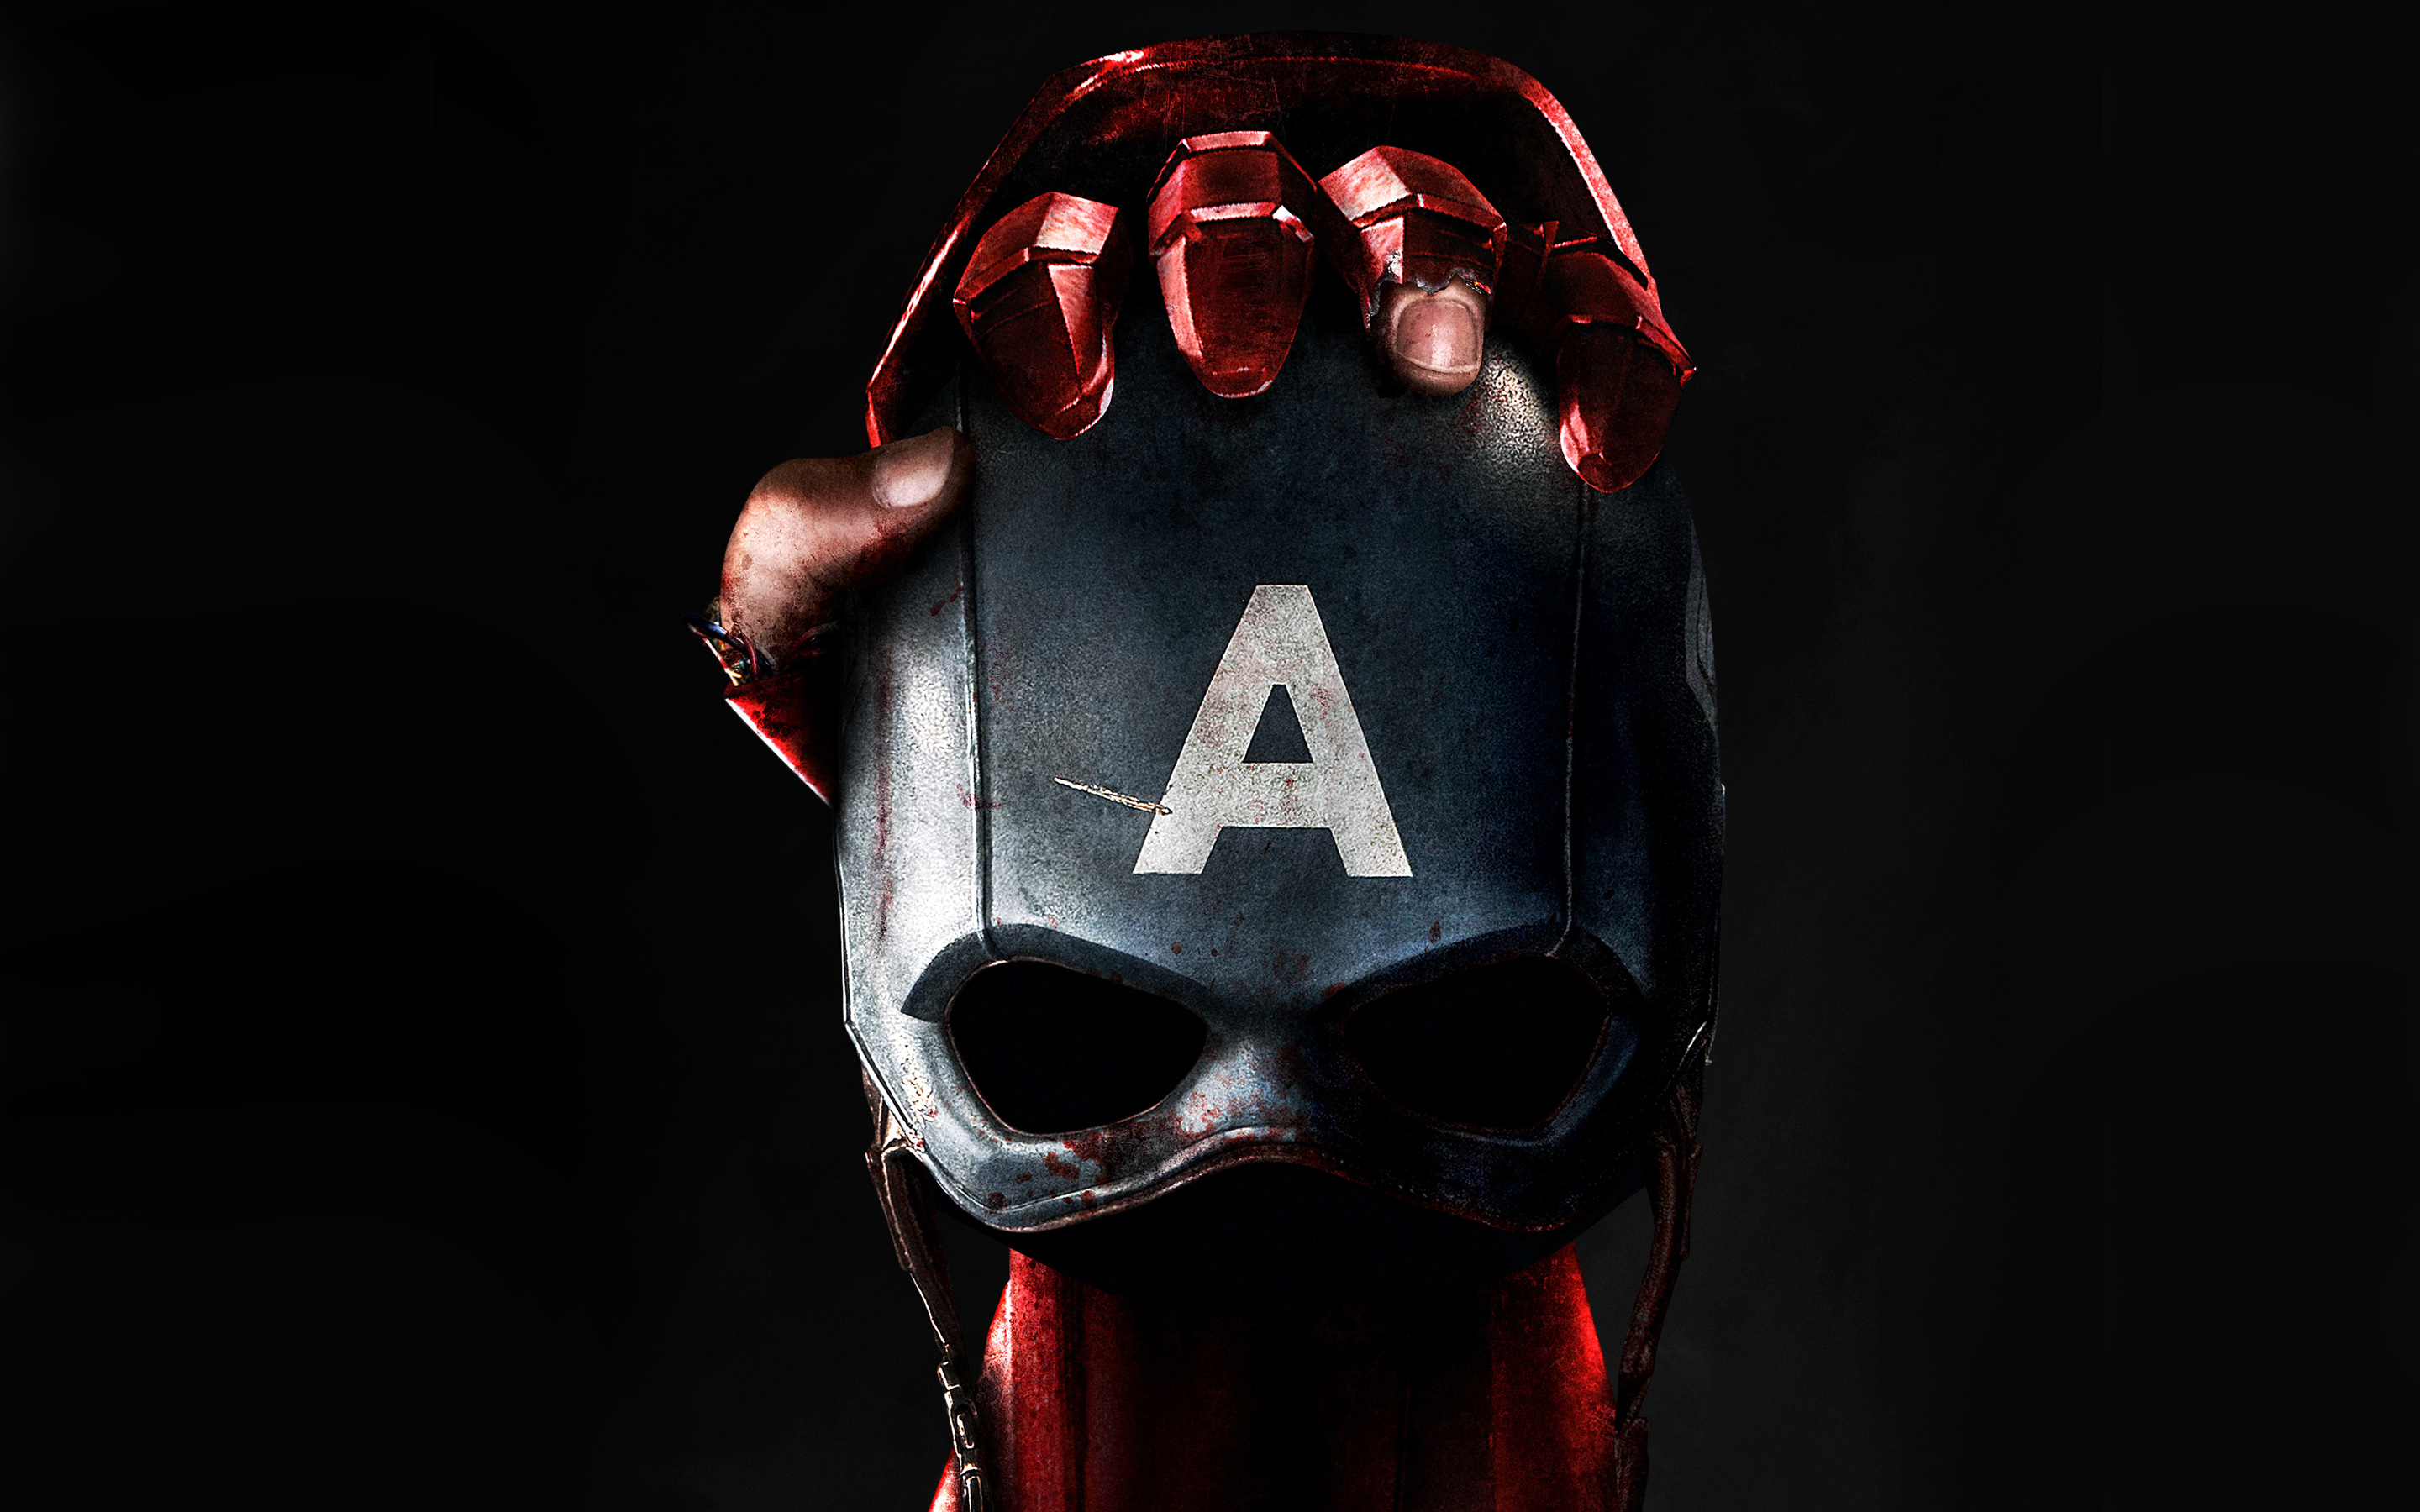 Hd wallpaper of captain america - Captain America Iron Man Hd Wallpaper Background Id 659971